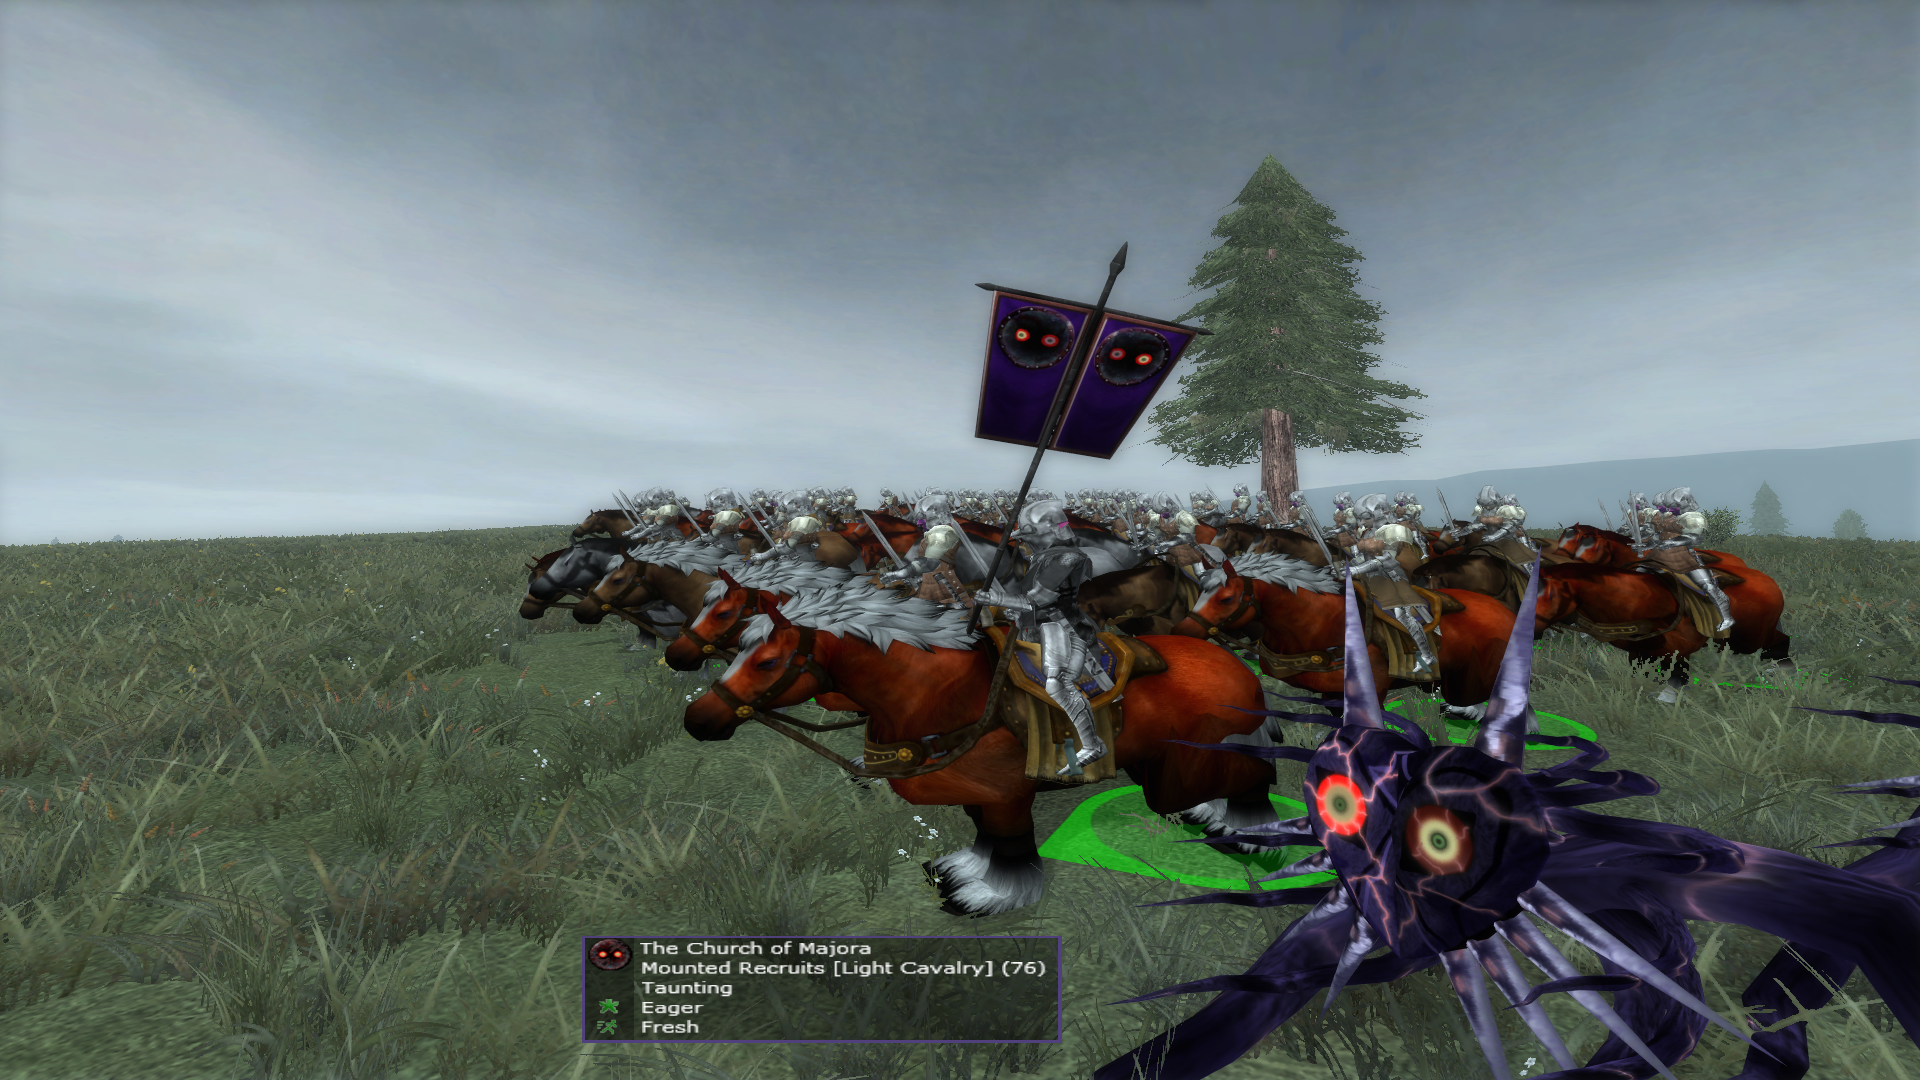 Mounted Recruits silver surfer horse for Majora fixed!